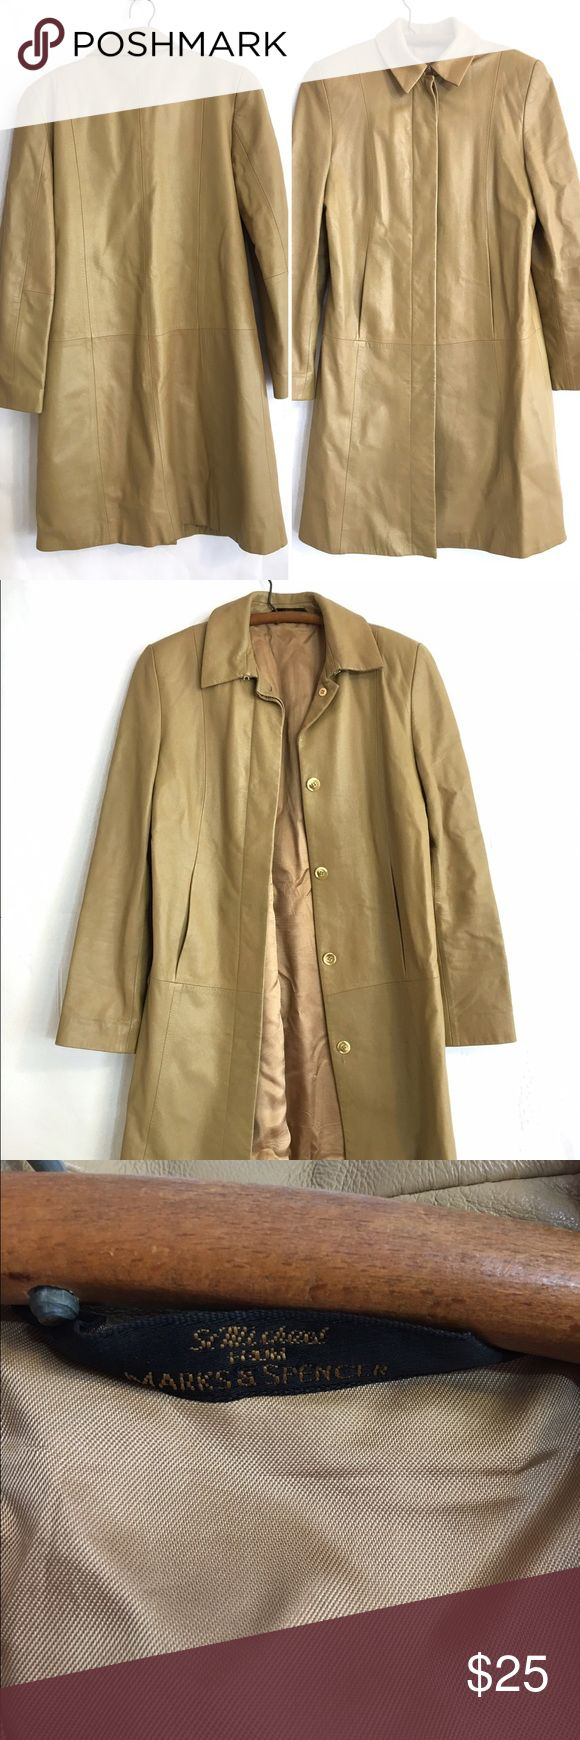 St. Micheal tan camel leather coat jacket St. Micheal tan camel brown leather coat  Bust: 18.5 Length: 28 Shoulder to cuff: 24 Shoulder: 17 marks & spencer Jackets & Coats